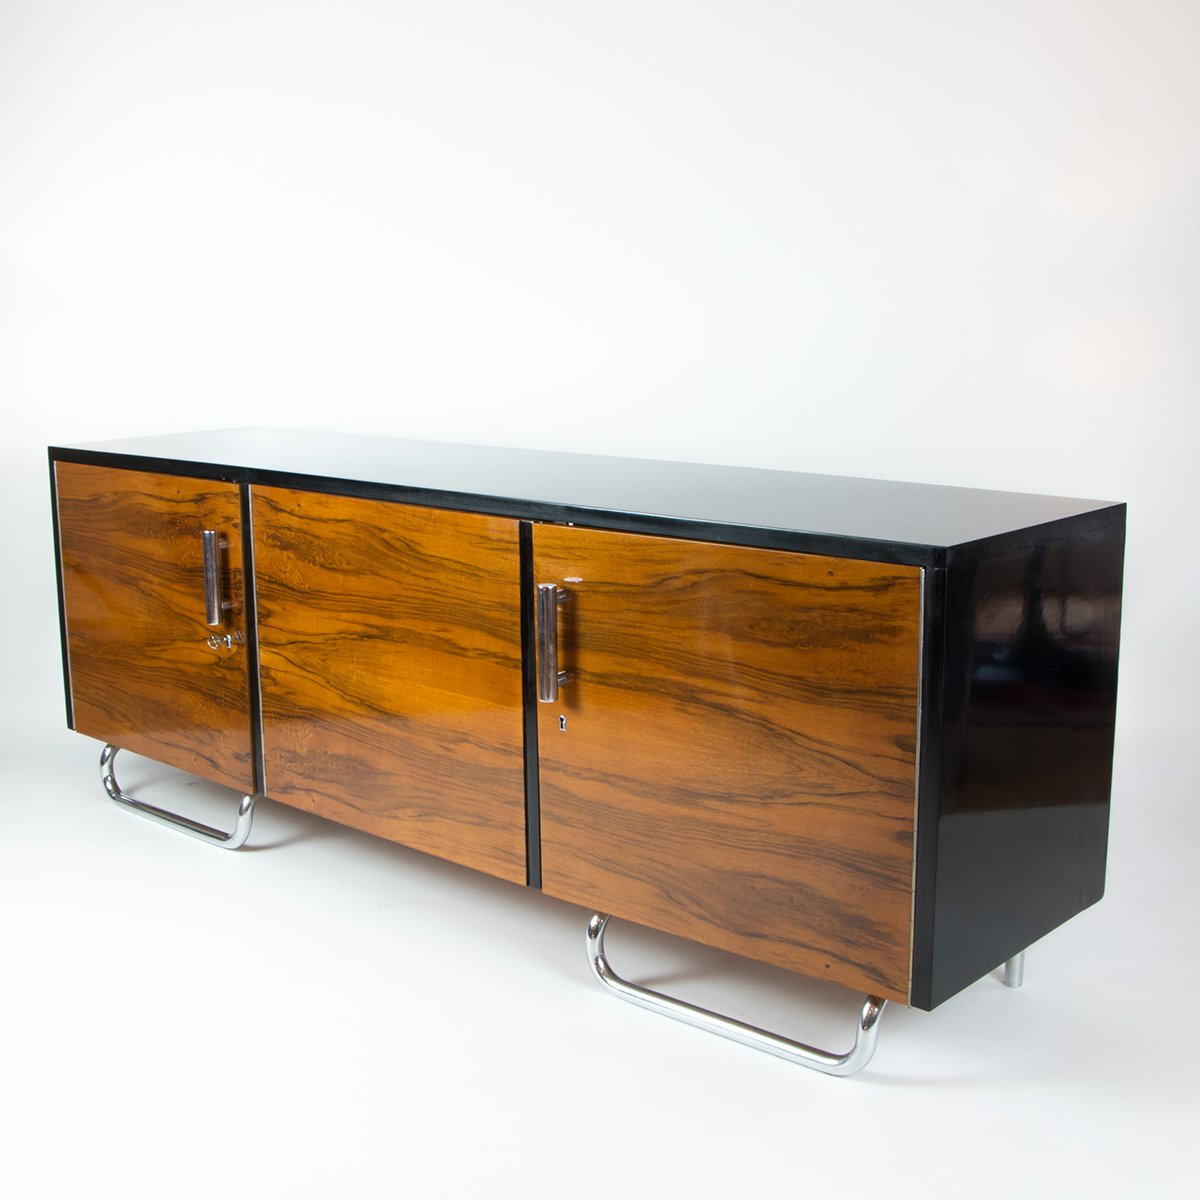 sideboard bauhaus rare and important art deco bauhaus sideboard or credenza swiss design. Black Bedroom Furniture Sets. Home Design Ideas